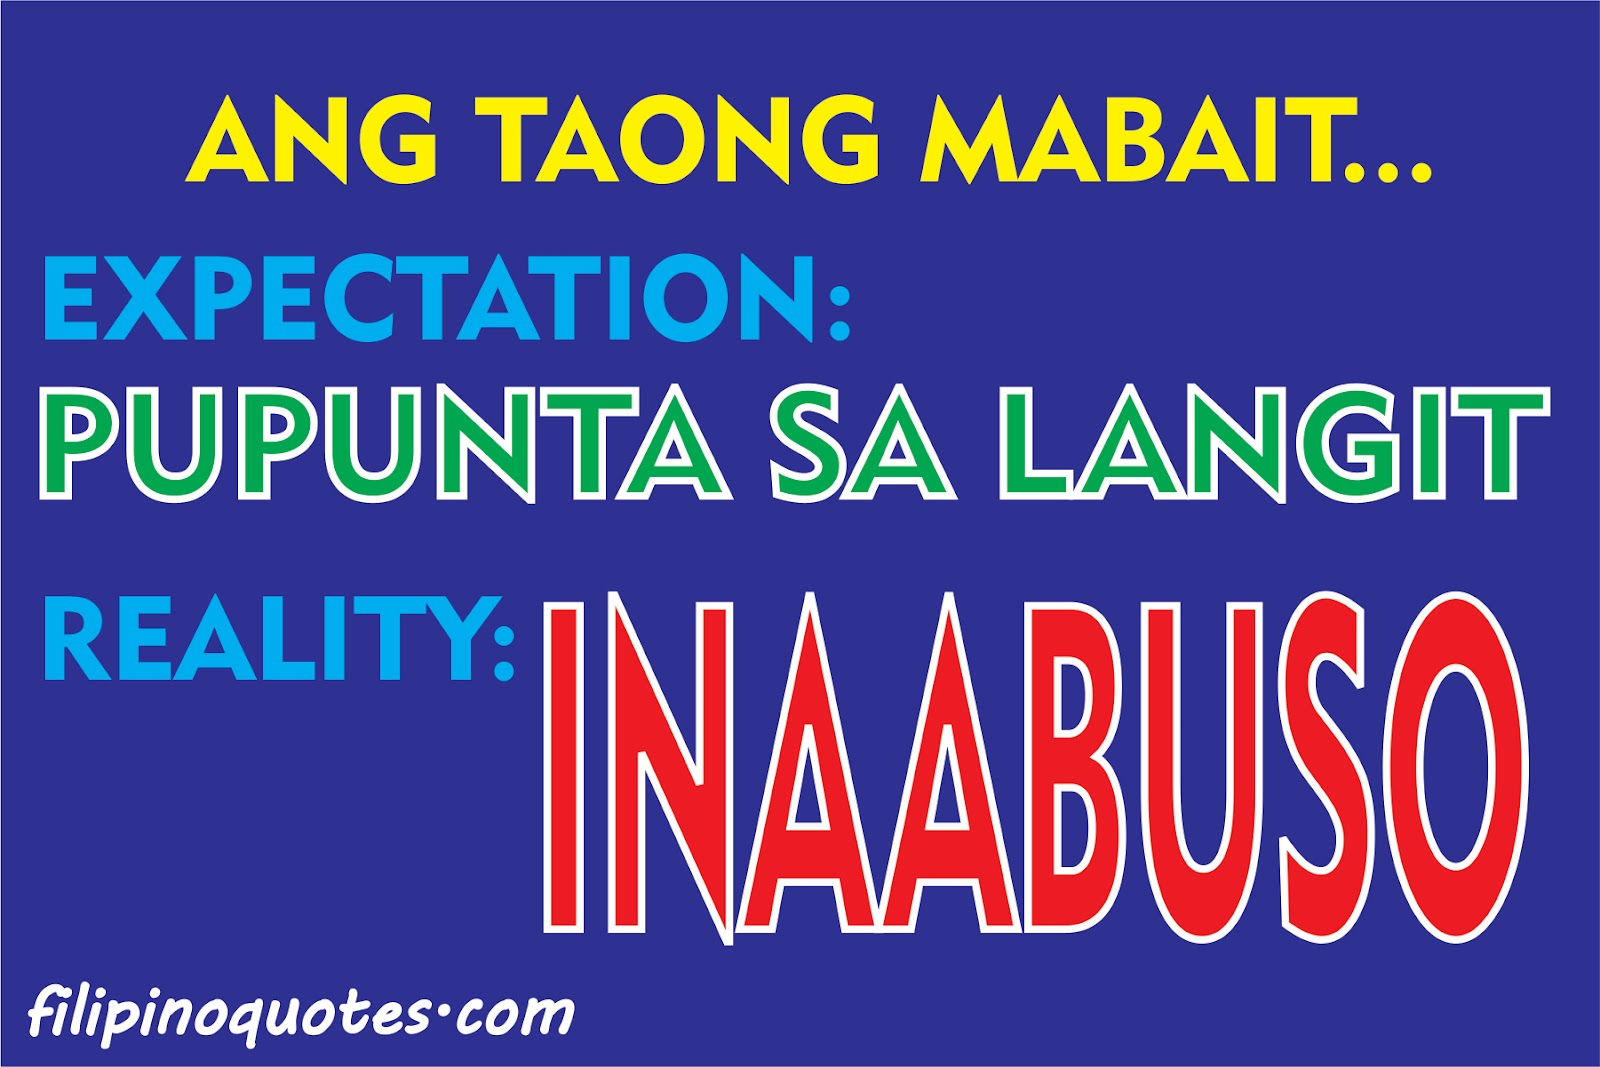 Love Quotes Tagalog Funny Tagalog : TAGALOG+QUOTES+-+FILIPINO+FACTS.jpg